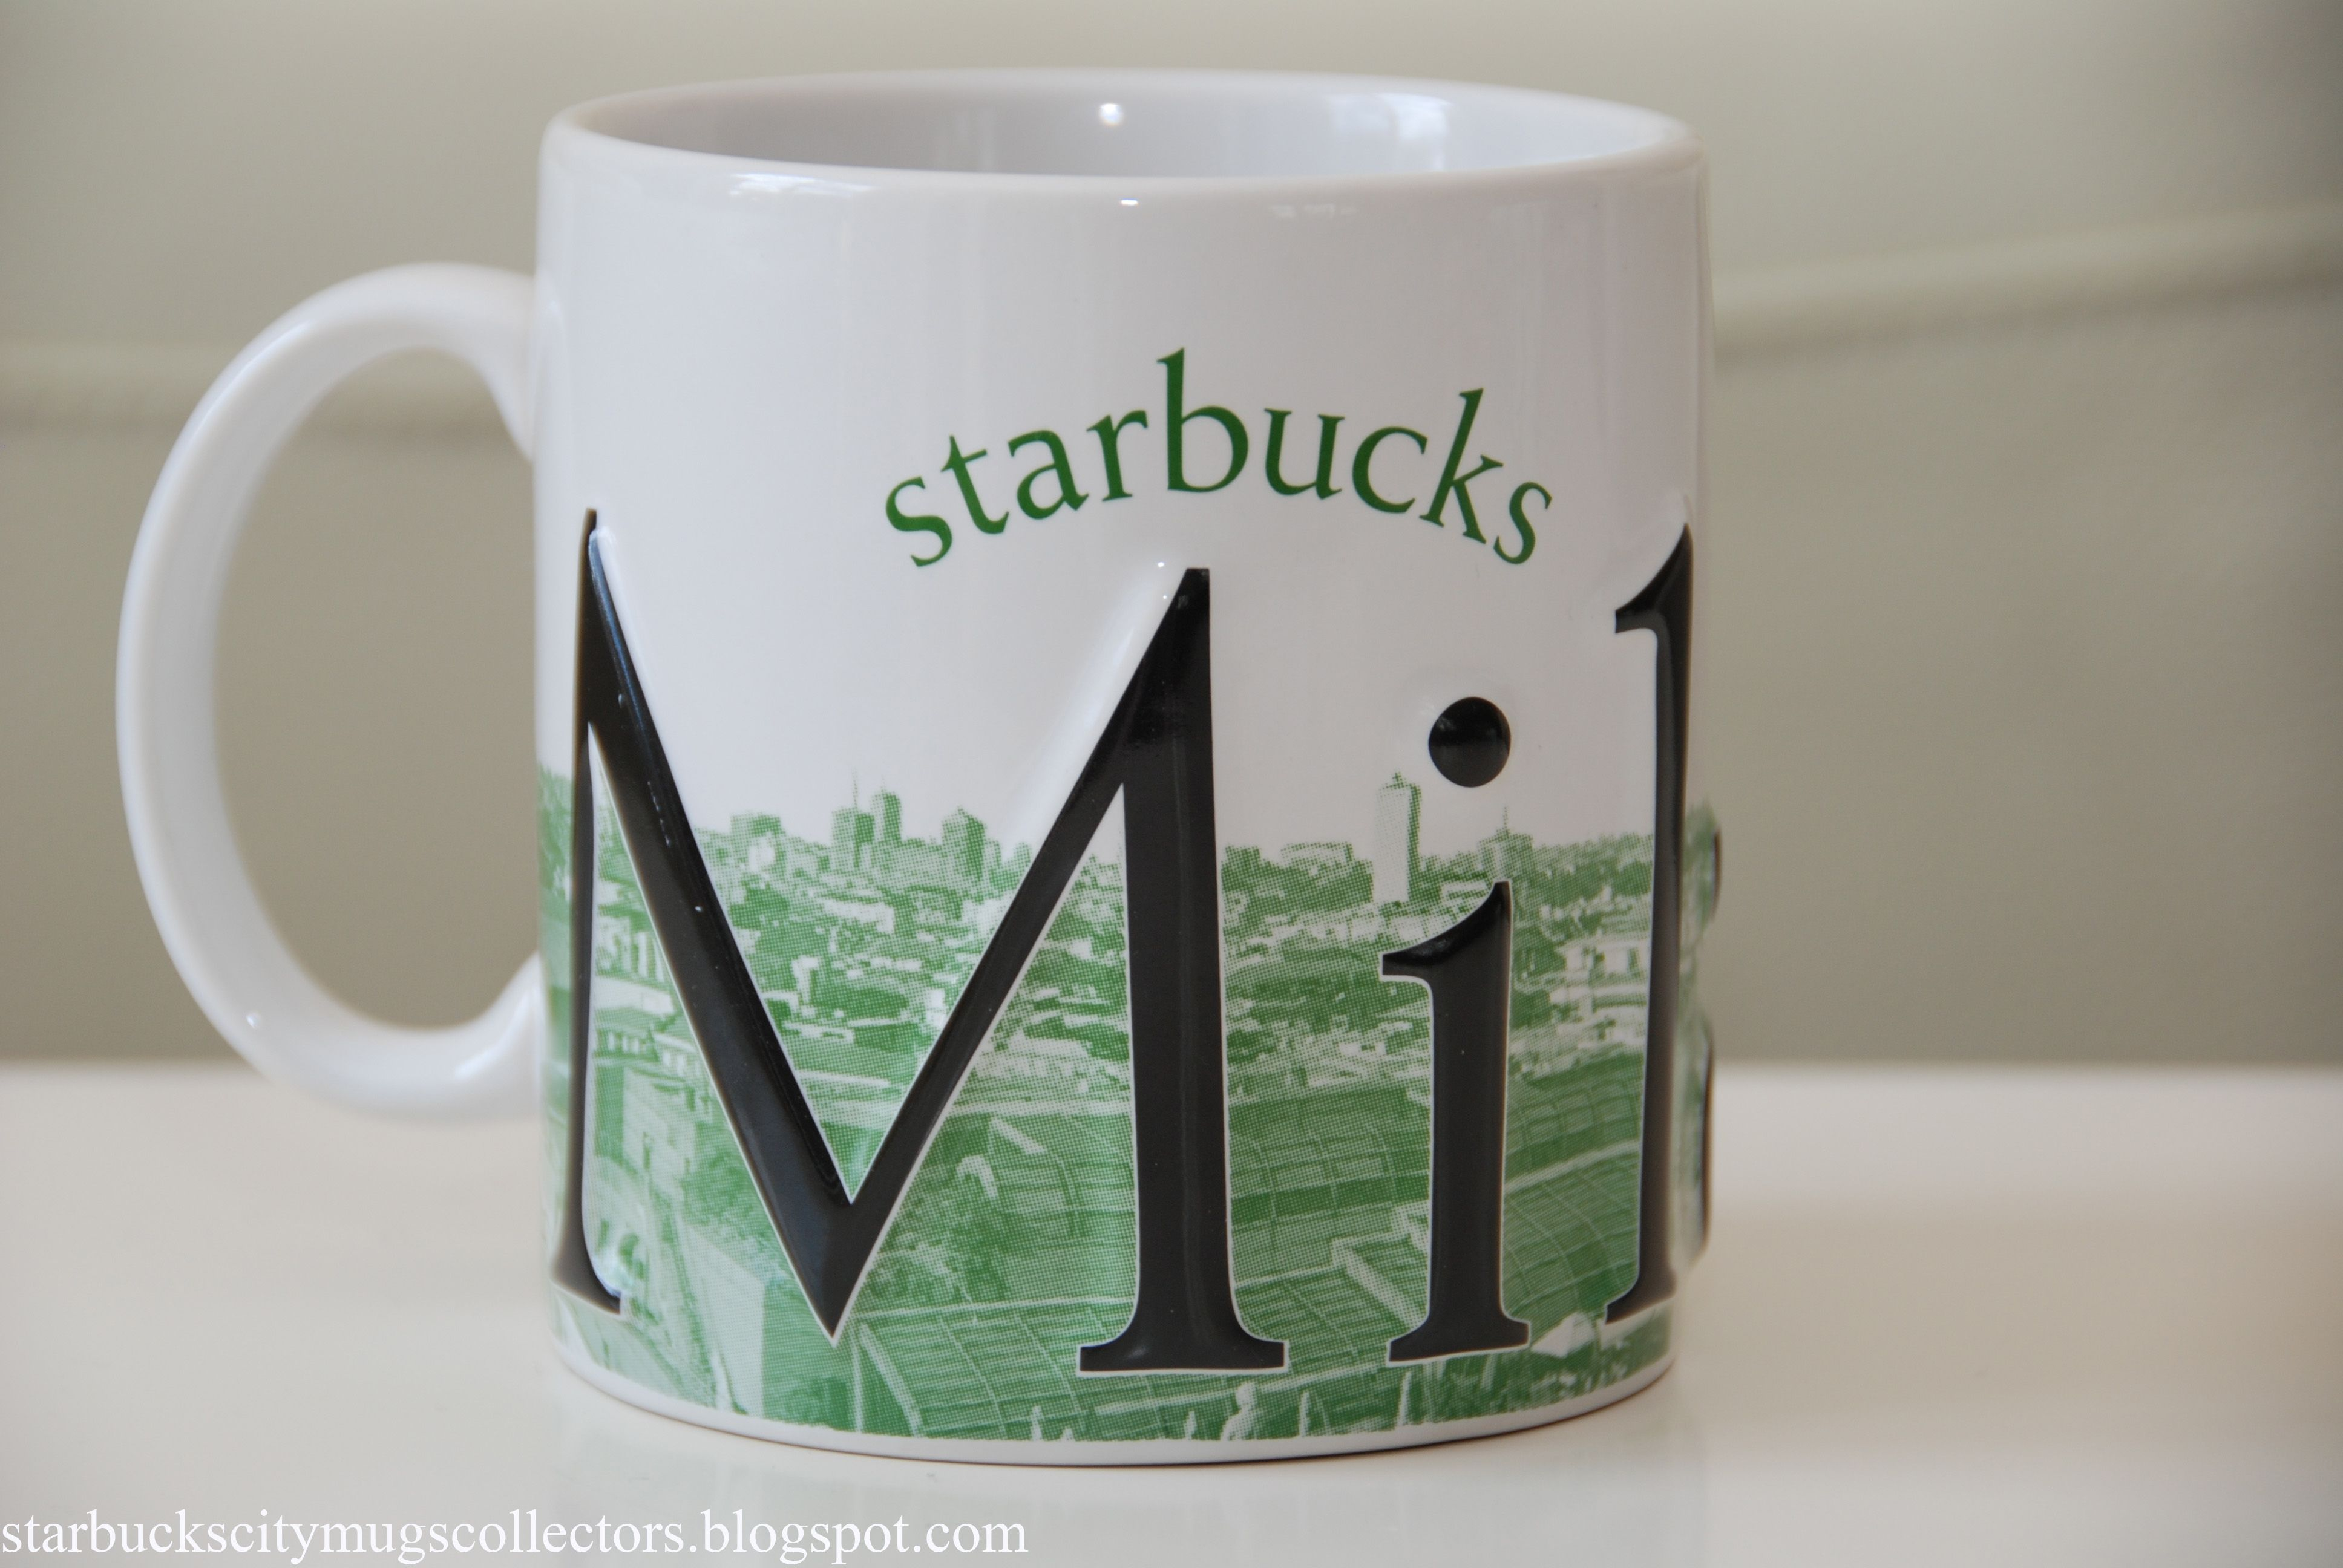 Milano Series Starbucks MugMugs City Valentine hxsdtorBQC